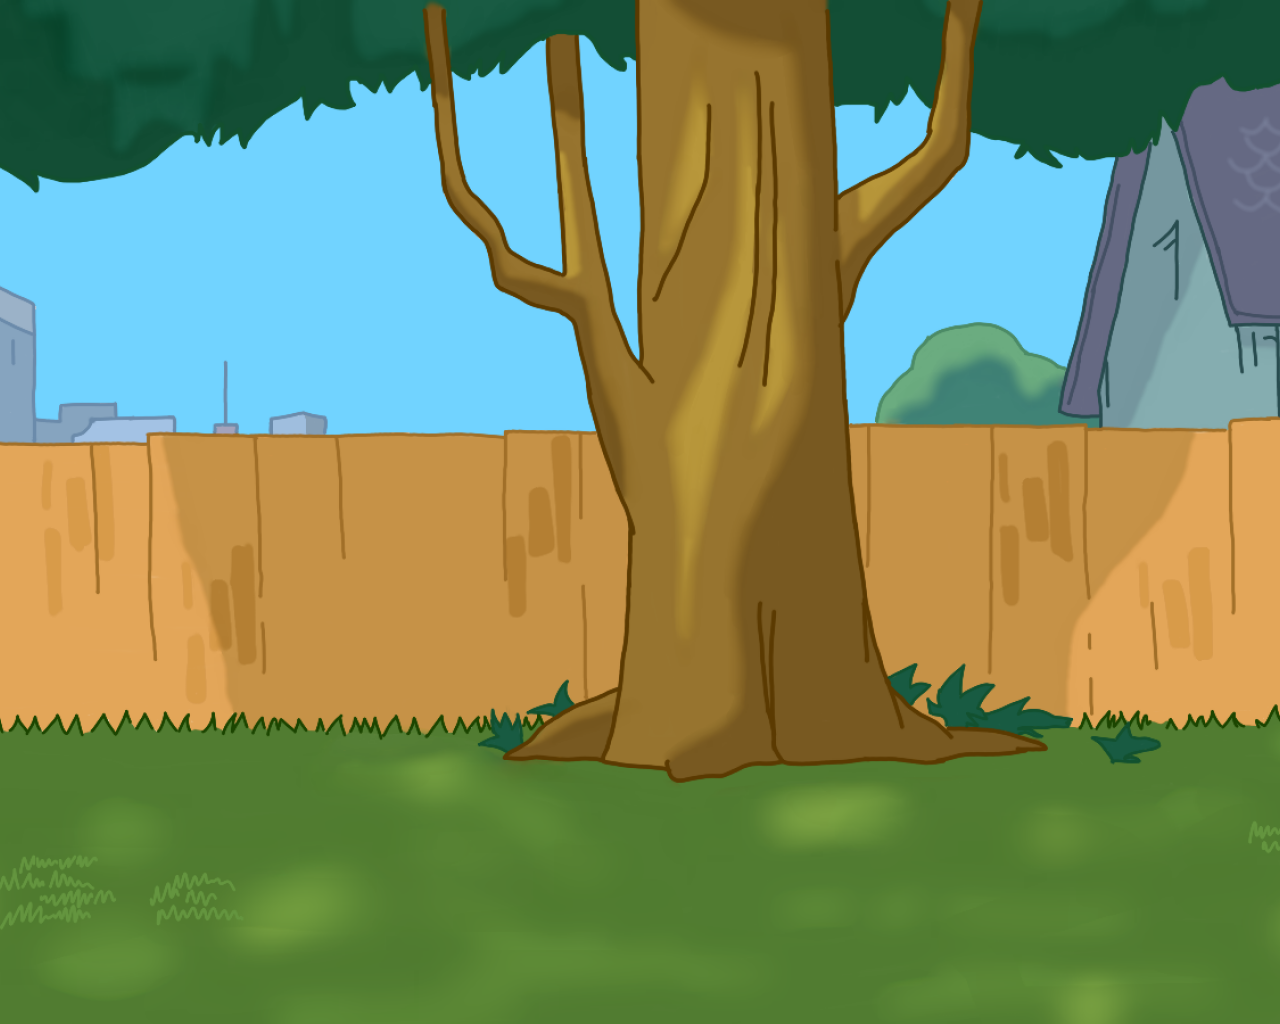 phineas_and_ferb__s_backyard_ | Phineas and ferb, Cartoon ...